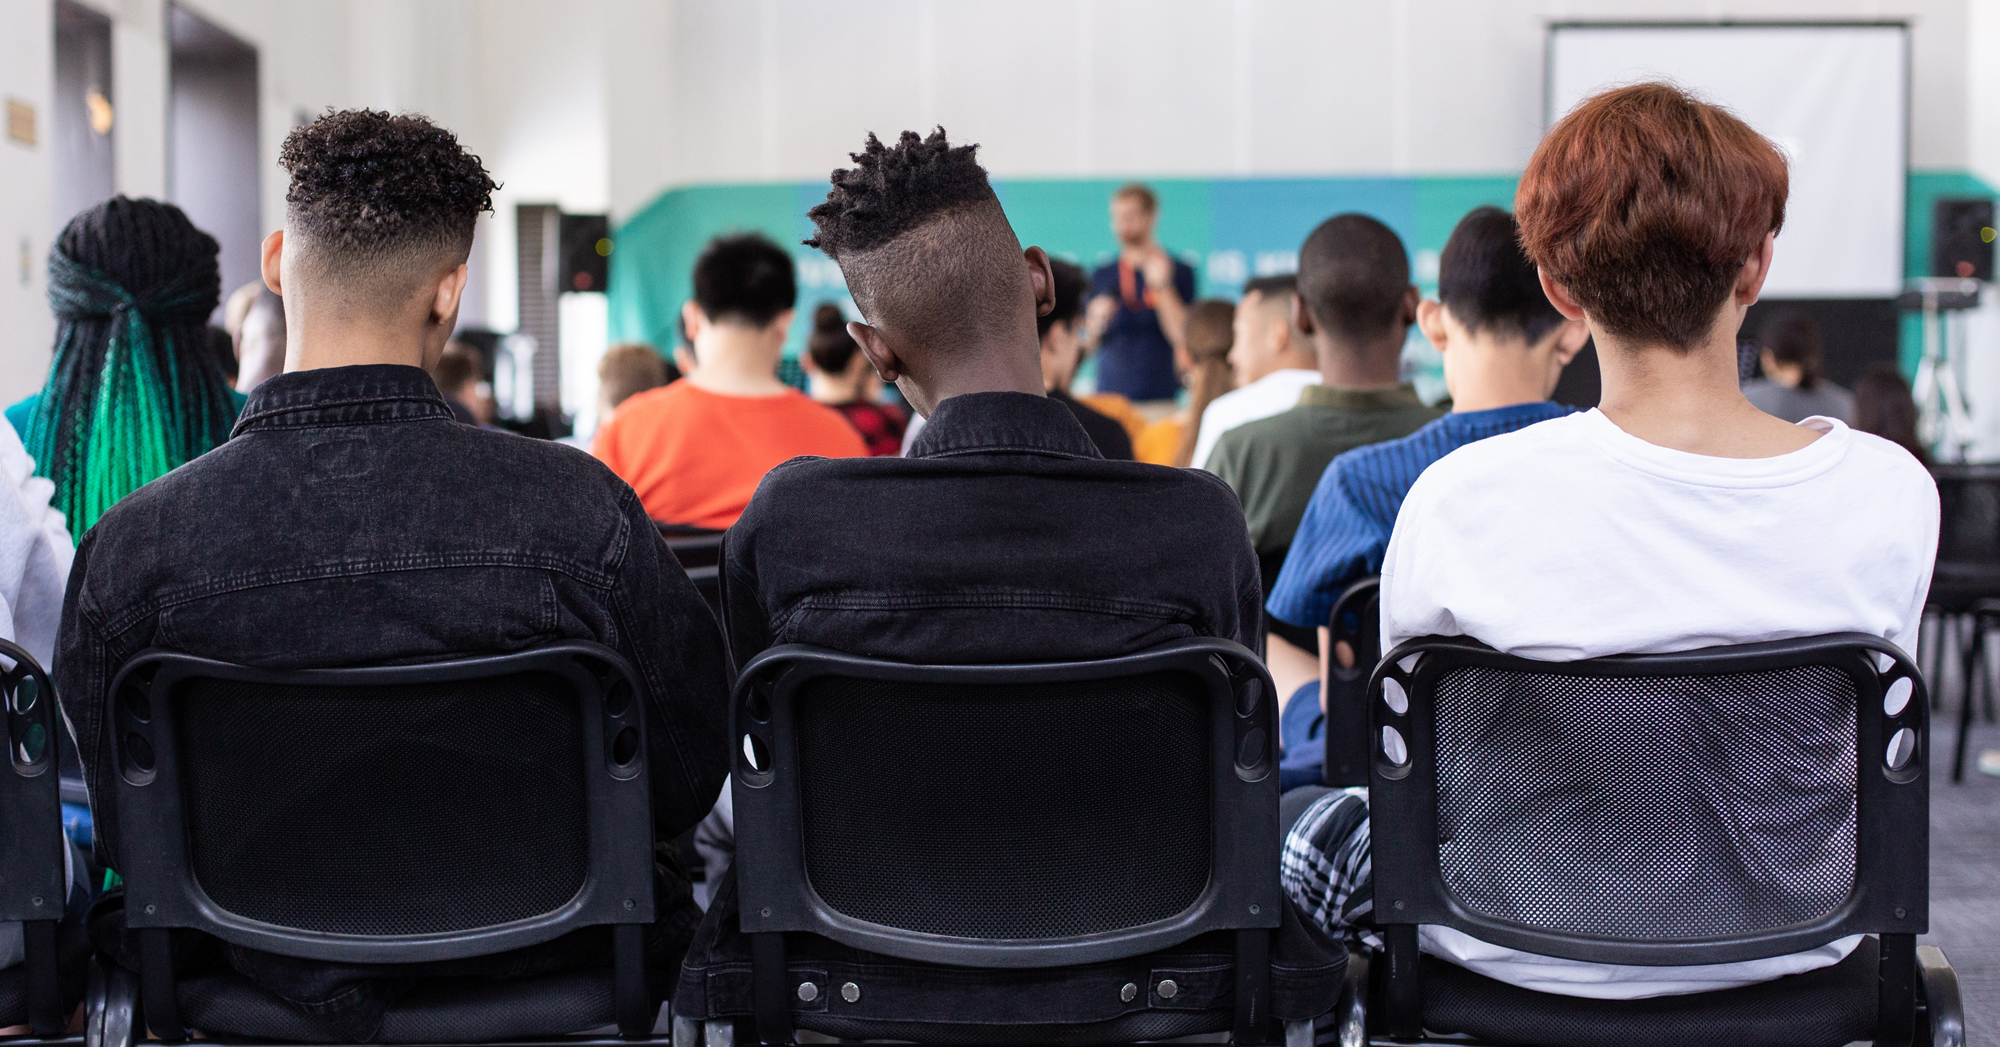 Photo by Sam Balye viaUnsplash of a crowded classroom from the back of the room showing a diverse group of students